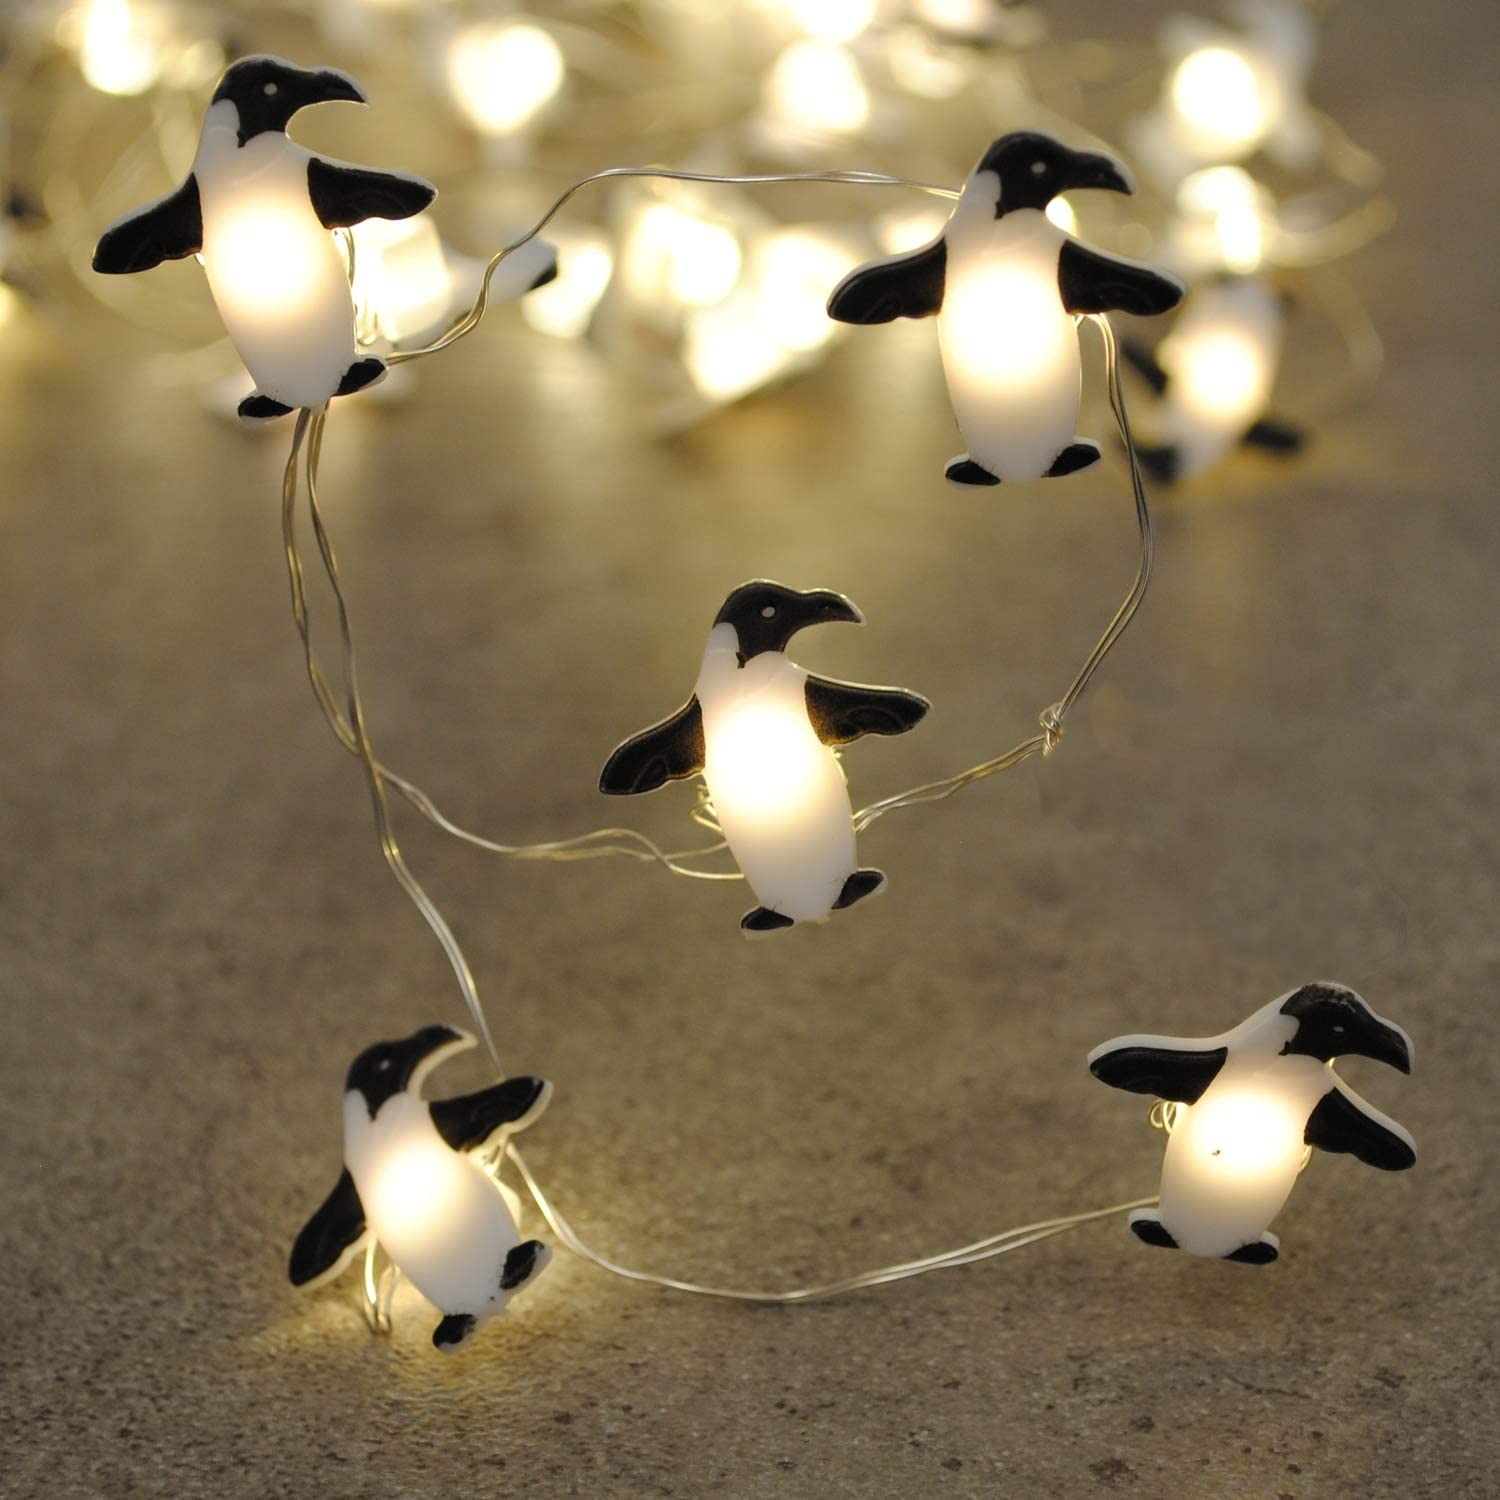 Brooklyn Lighting Company LED Wire Lights, LED String Lights, Battery Operated String Lights with 36 Penguin Shaped Warm LEDs for Party, Bedroom, Kitchen, Patio, Deck and More, 12 Feet Long